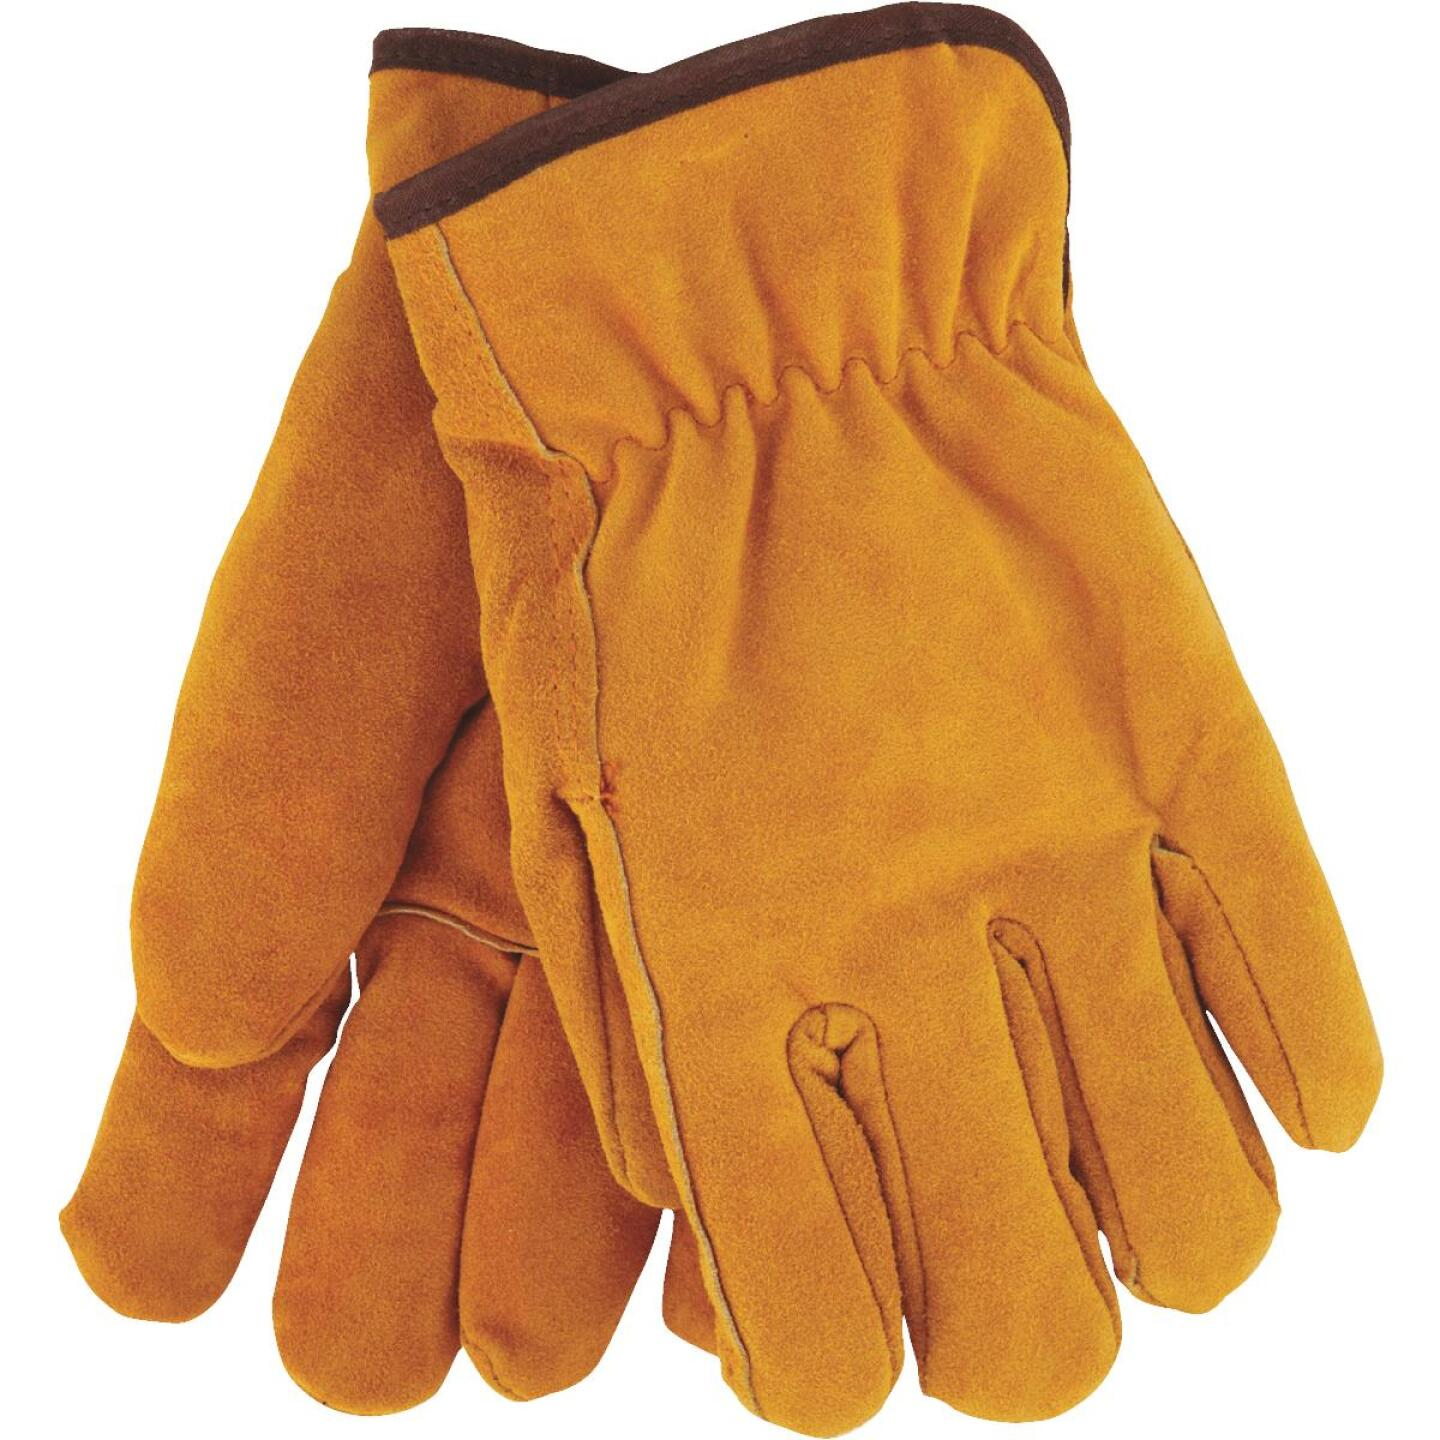 Do it Men's XL Lined Leather Winter Work Glove Image 1